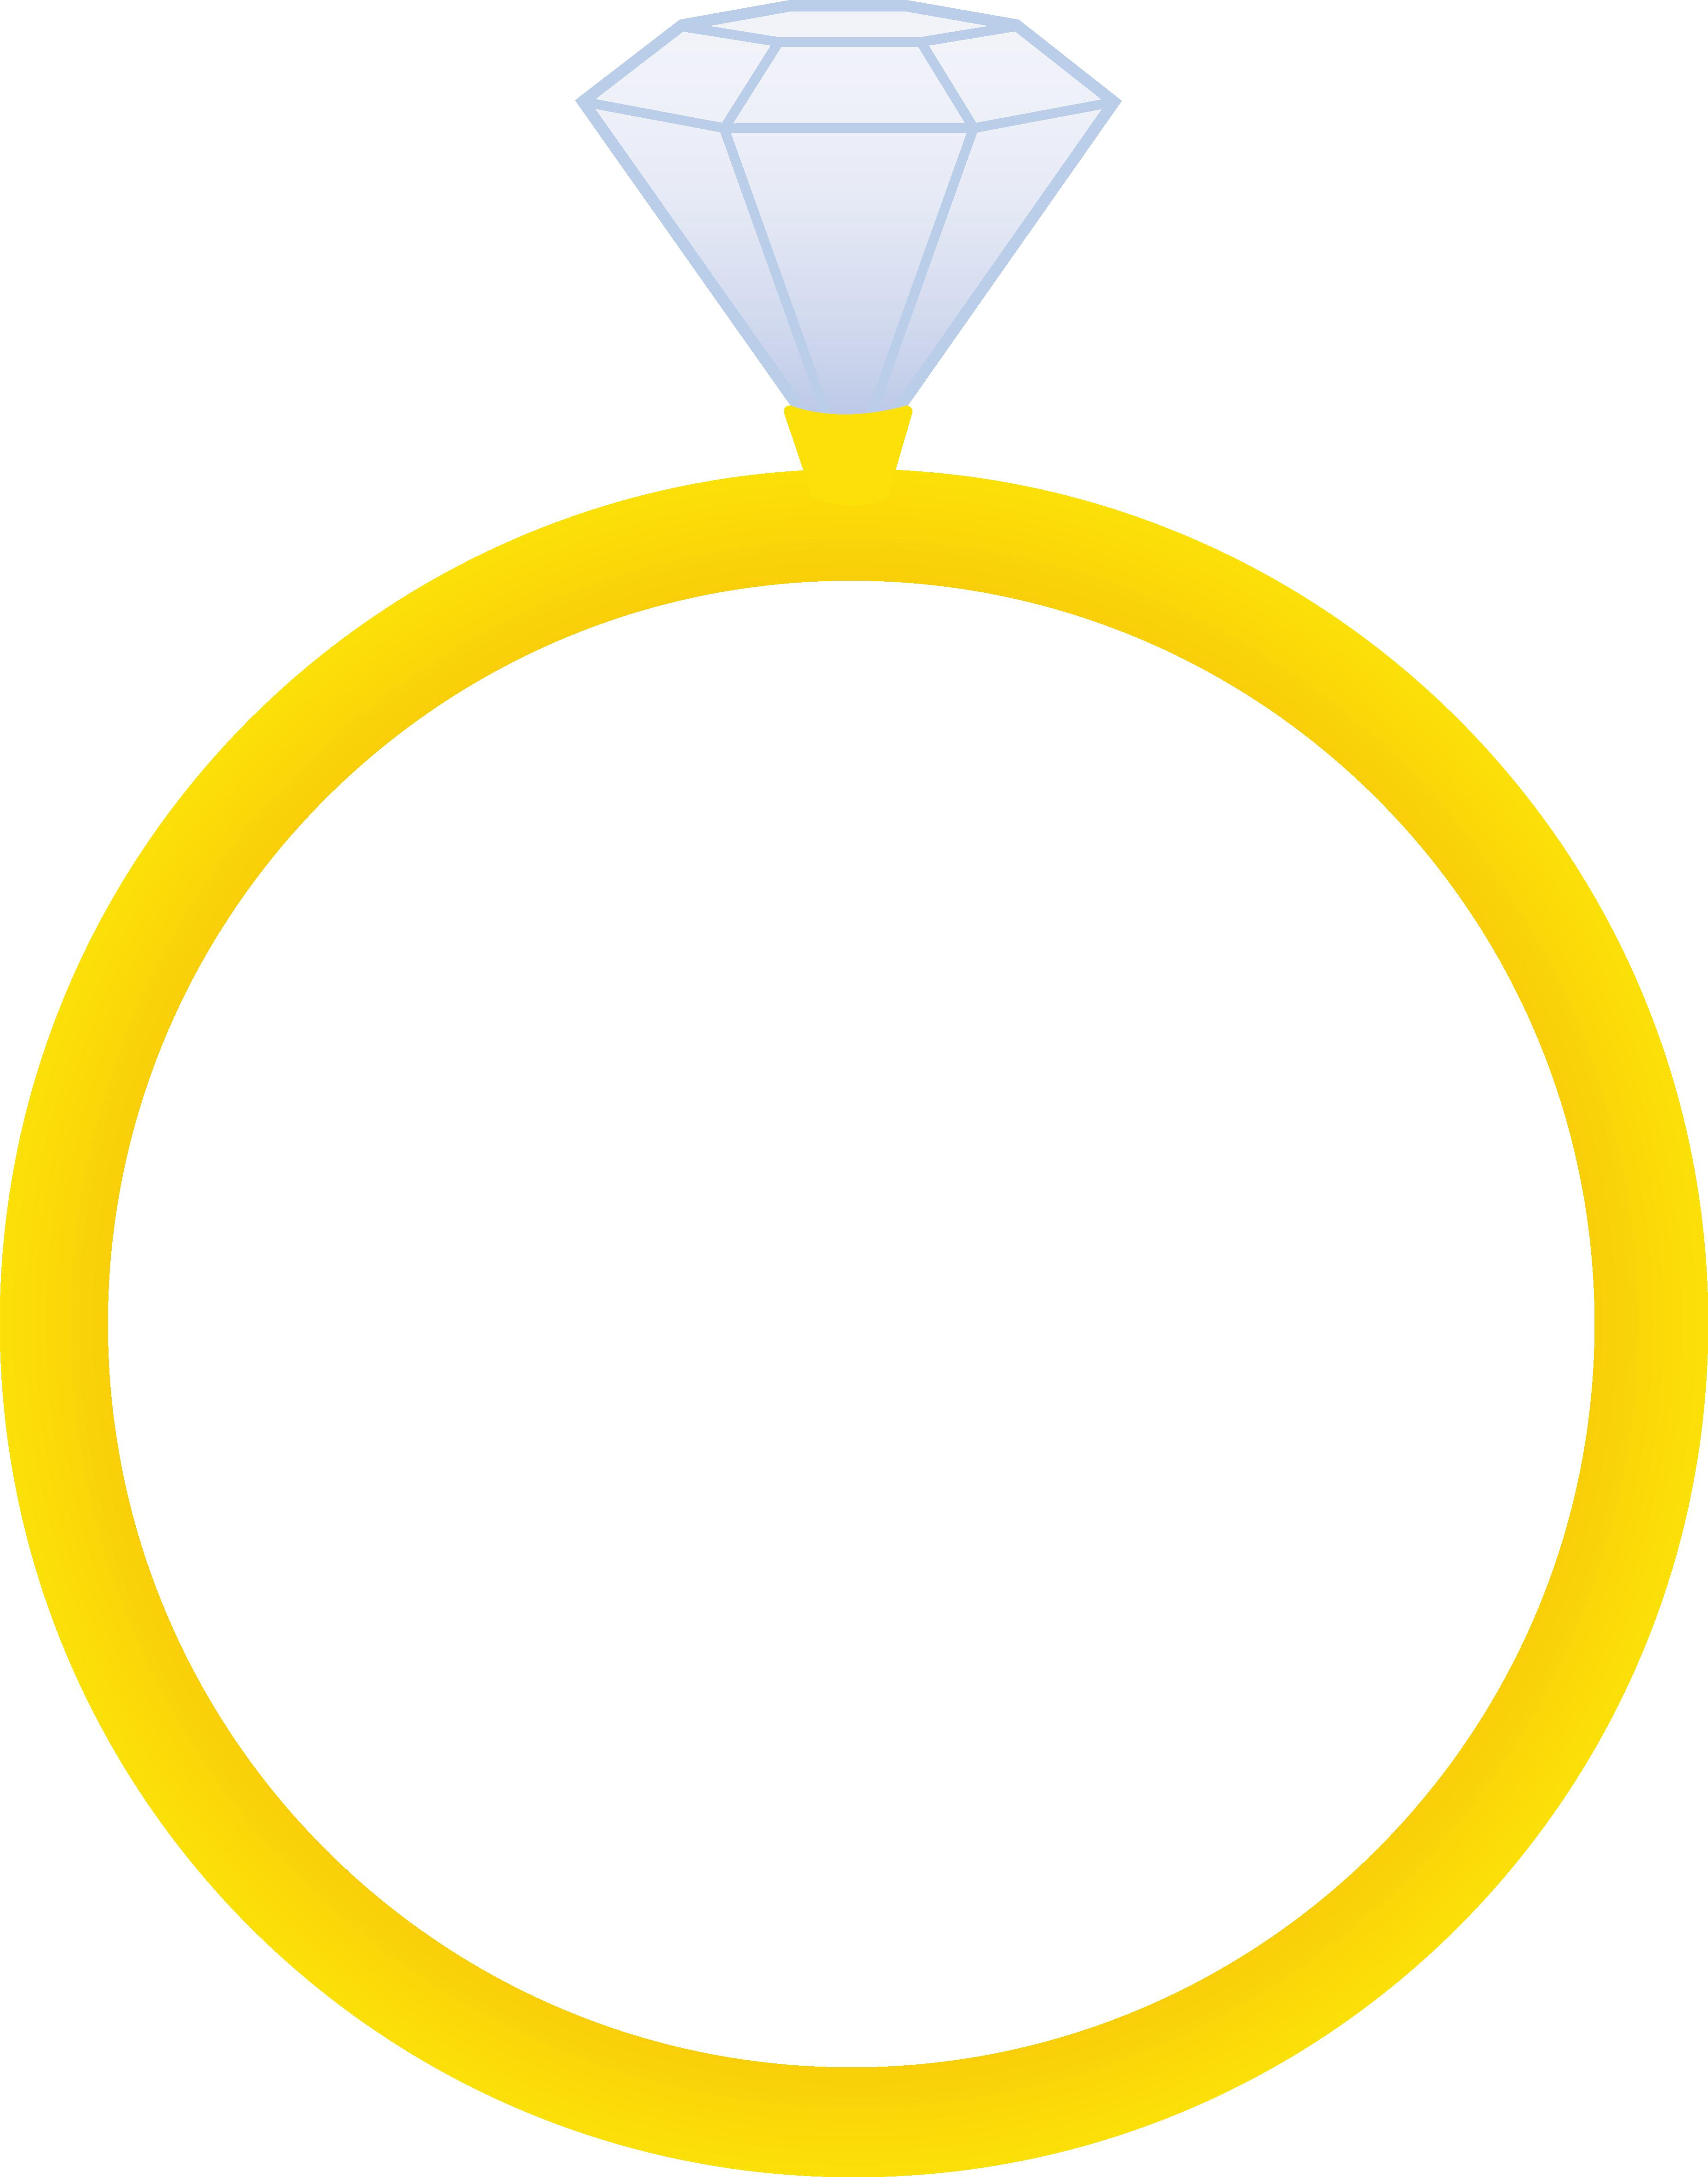 Free Ring Clipart, Download Free Clip Art, Free Clip Art on Clipart.